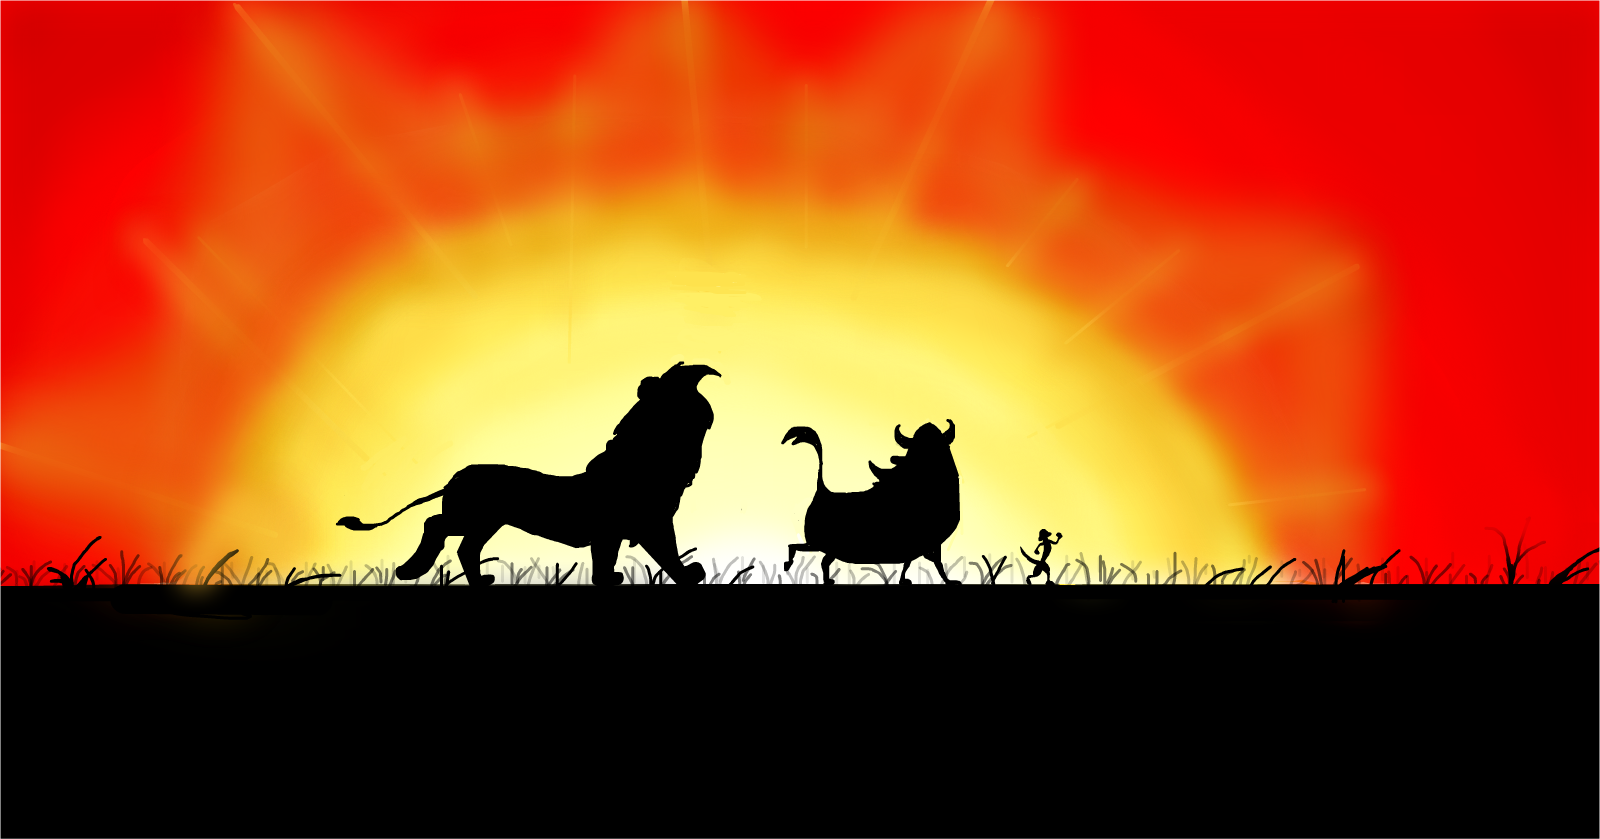 15 the lion king quotes for mindfulness